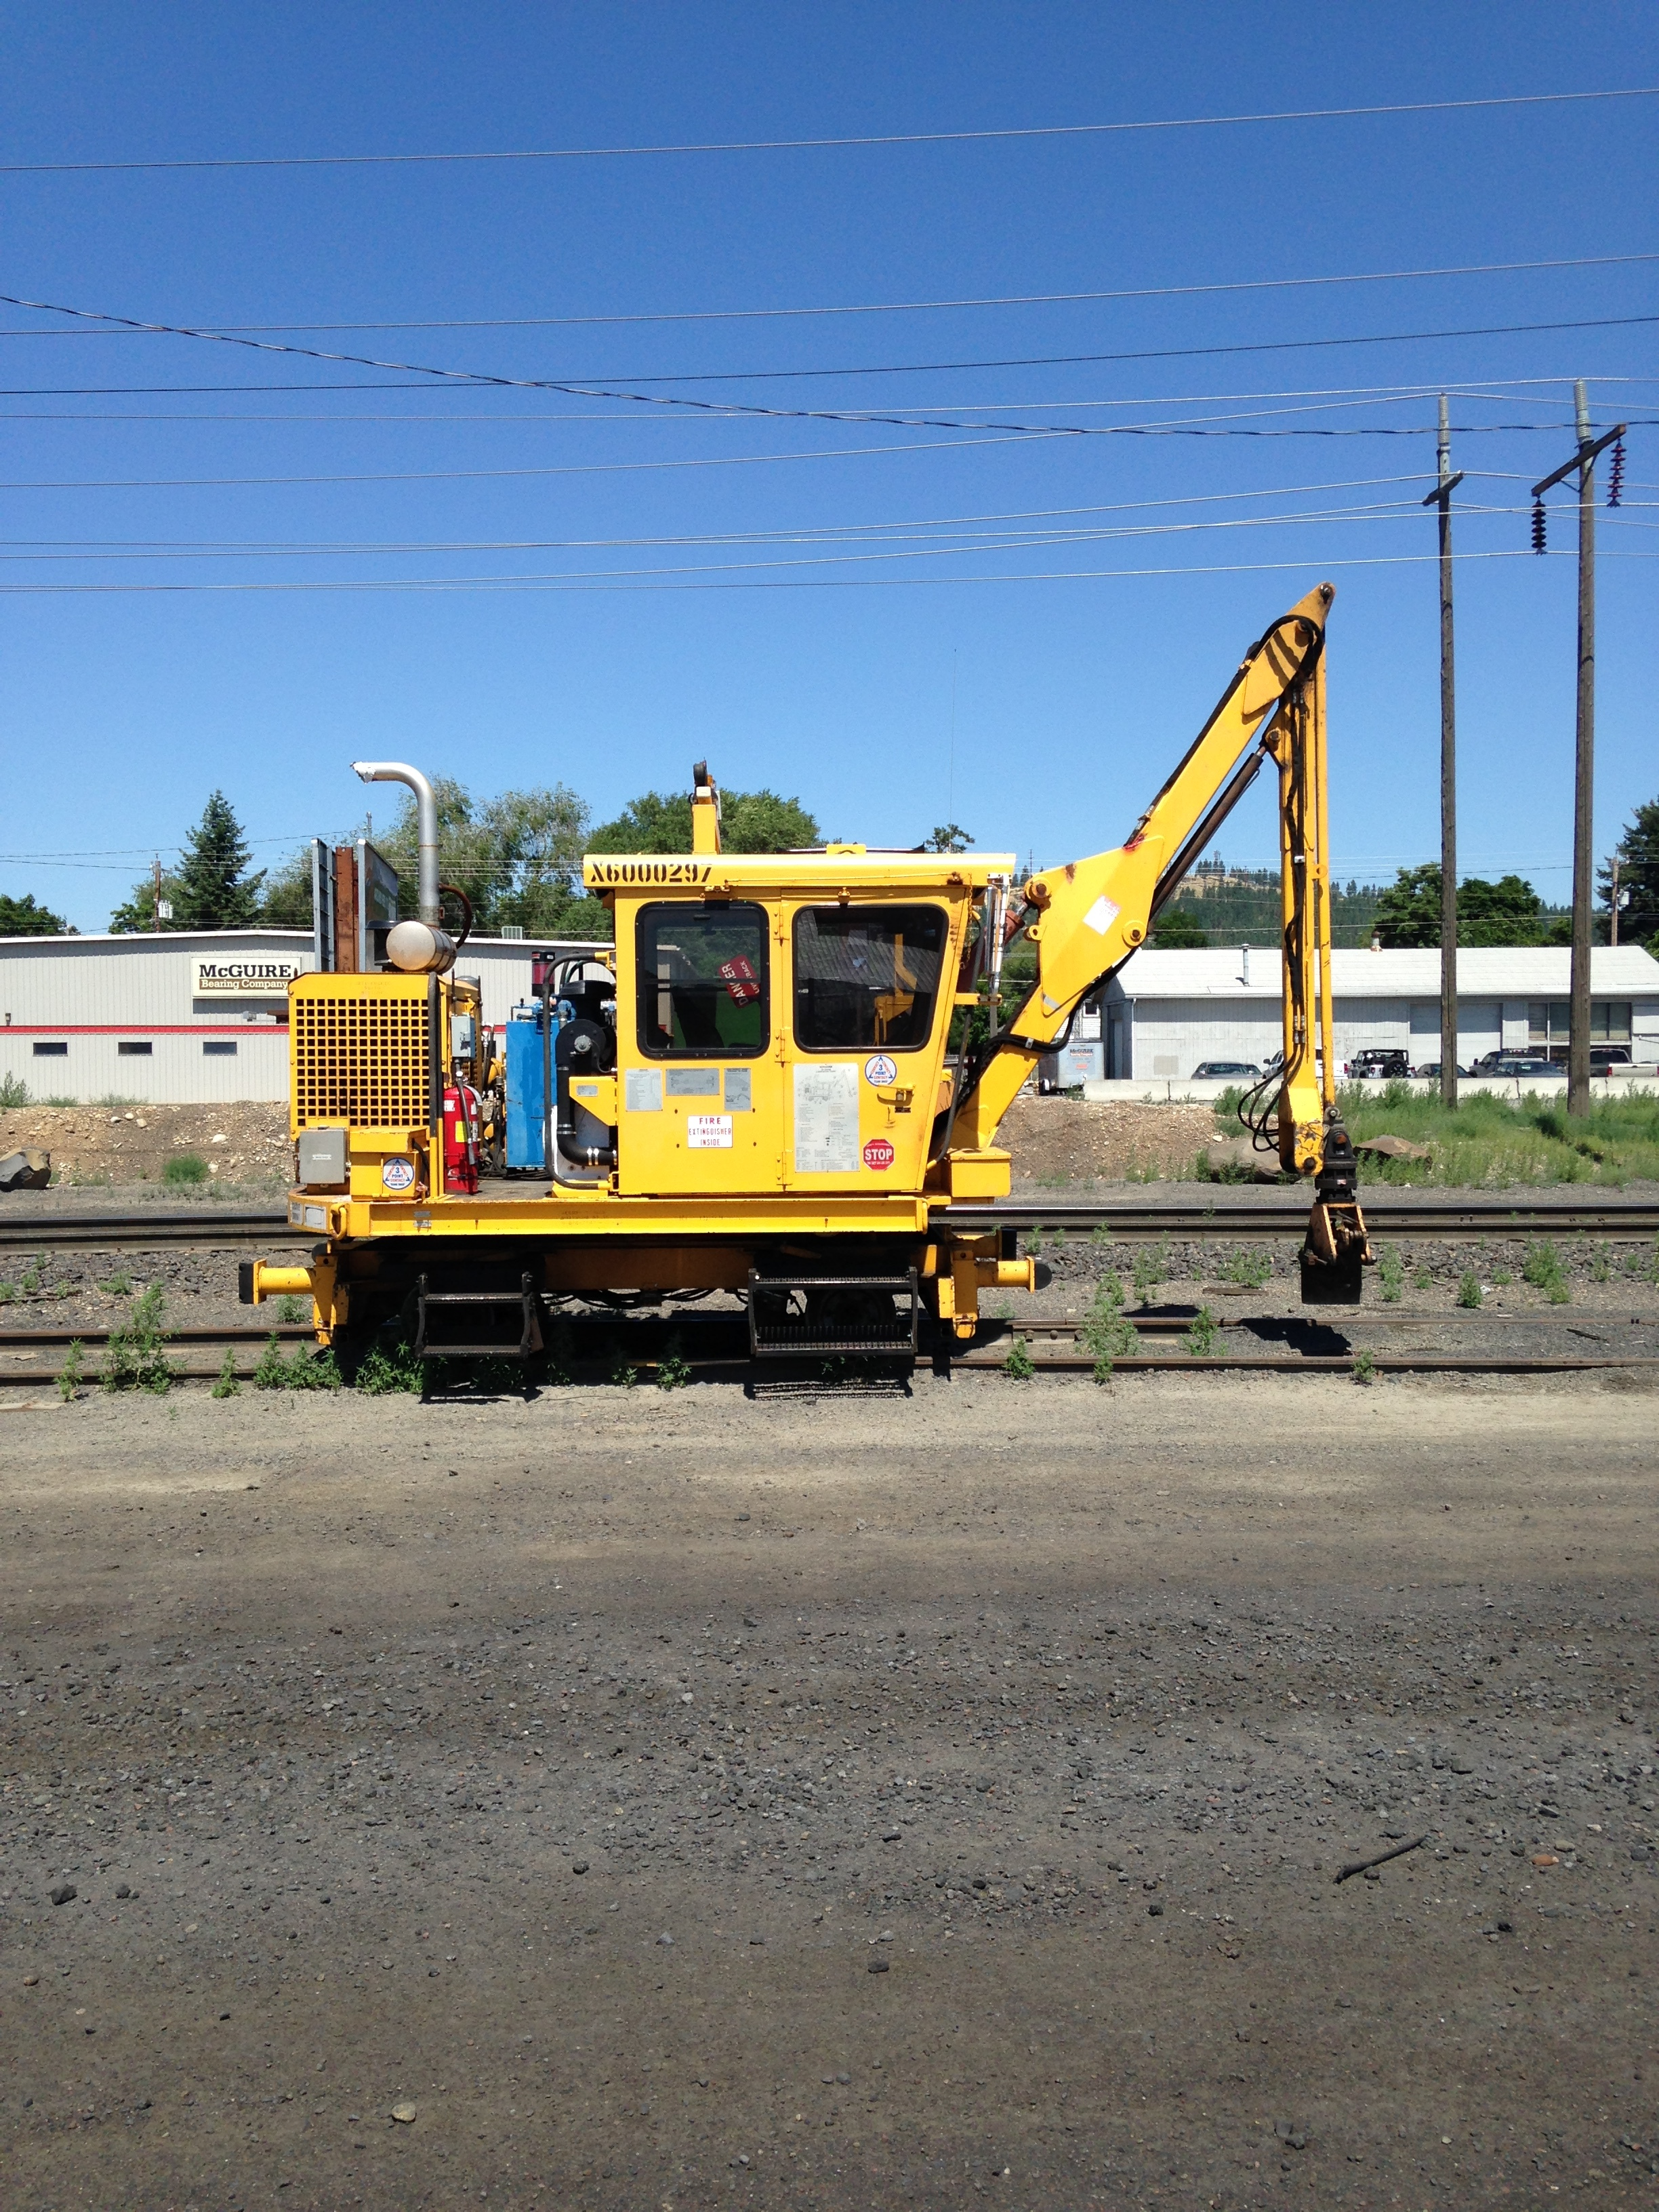 A road grader? Clearly it doesn't move around a lot, but I love the cheery primary colors.